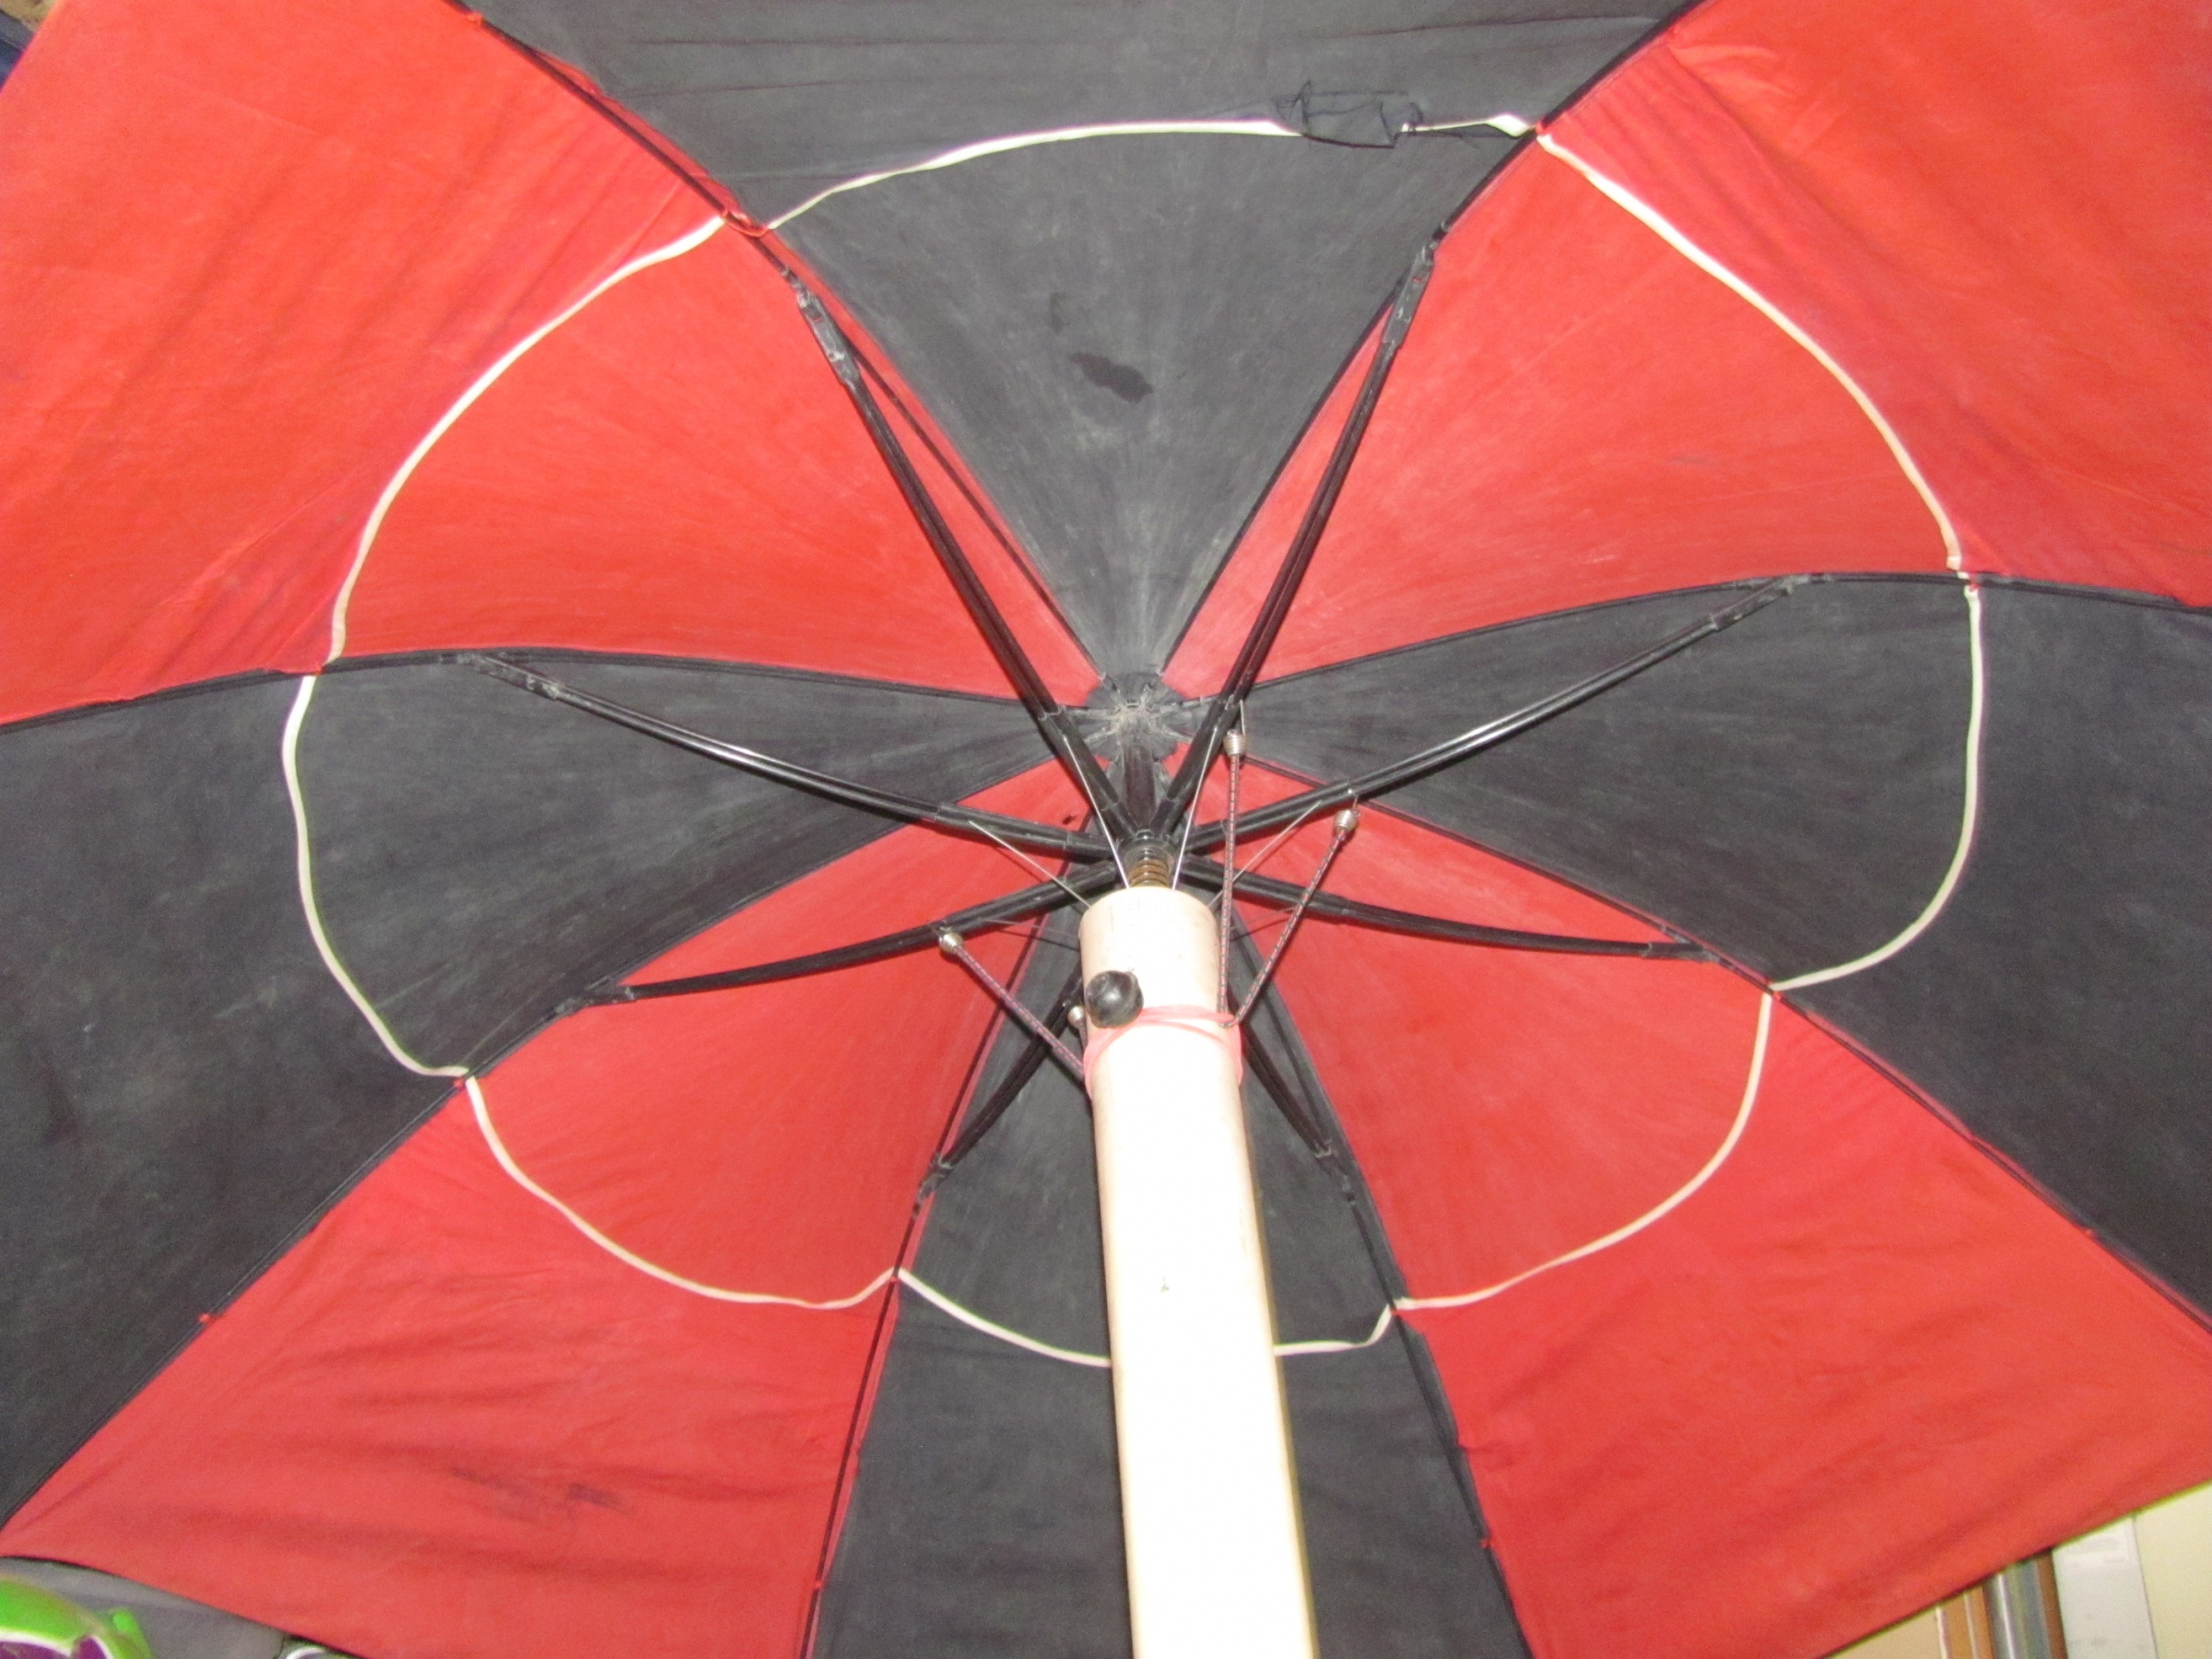 Click image for larger version  Name:umbrella pictures 004.jpg Views:89 Size:1.06 MB ID:15546